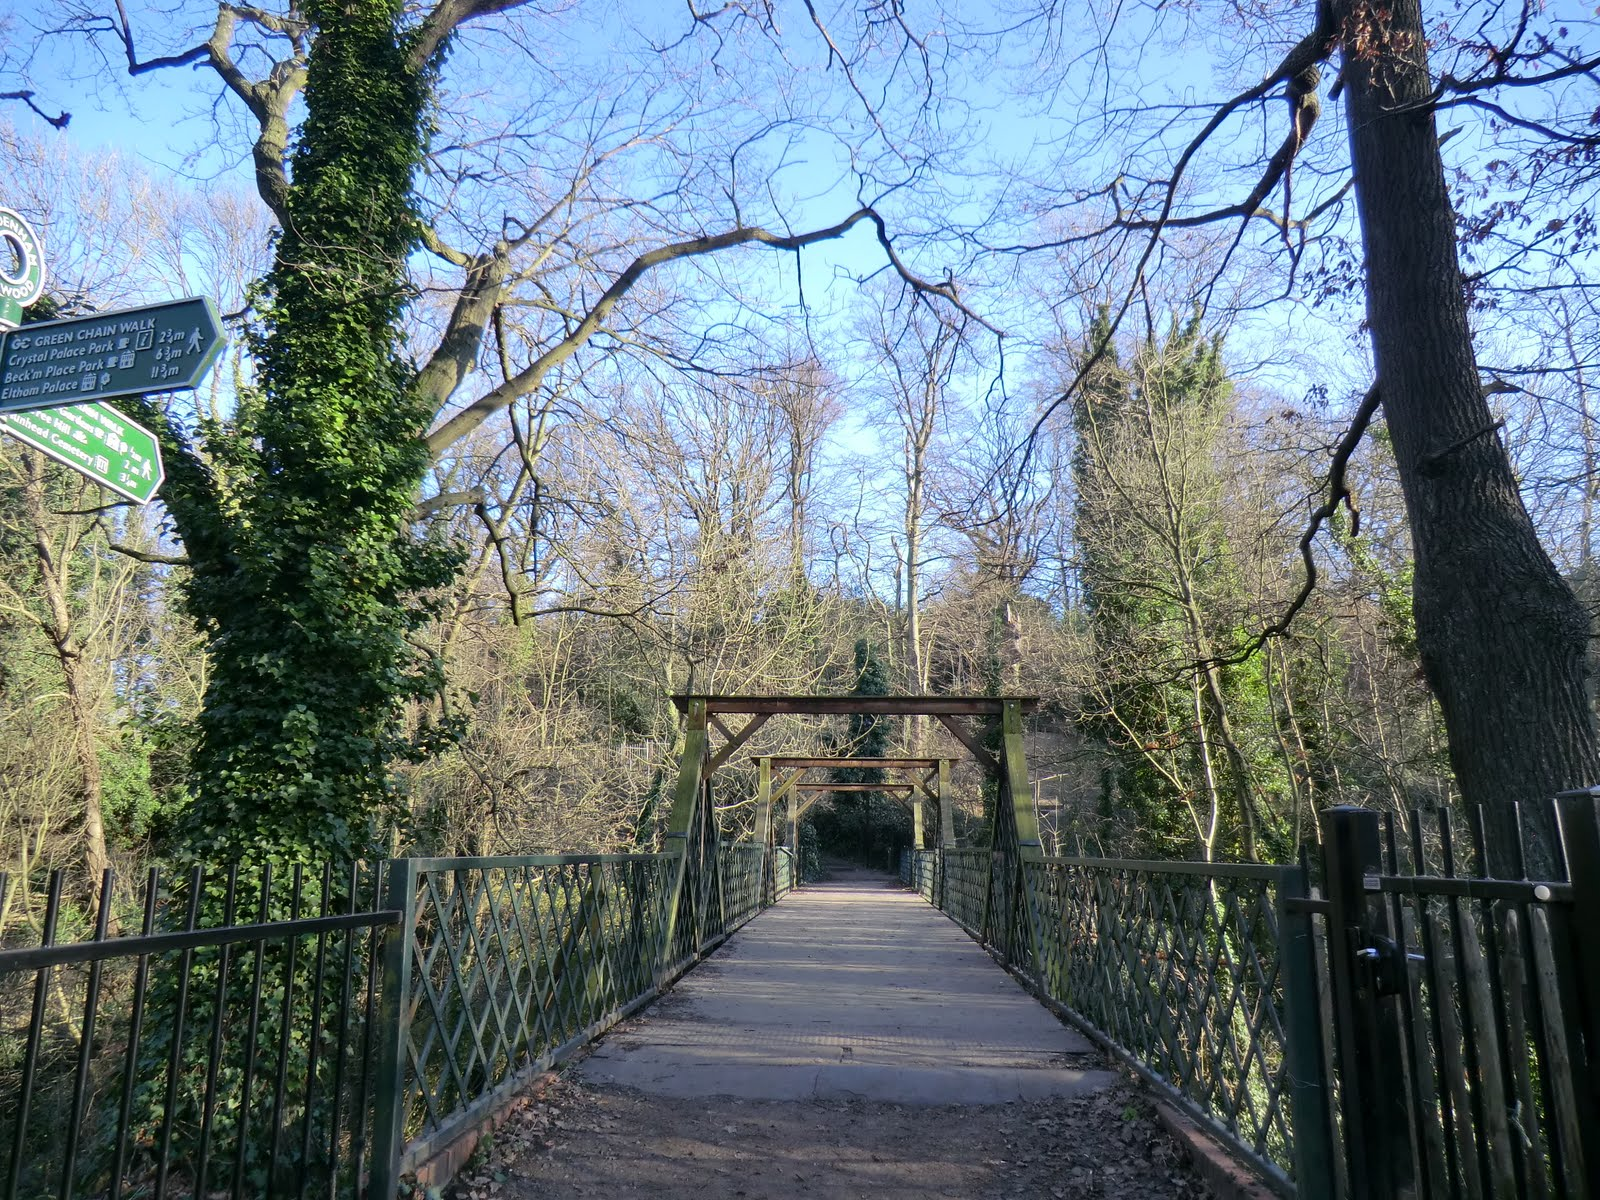 CIMG1610 Cox's Walk Footbridge, Sydenham Hill Wood